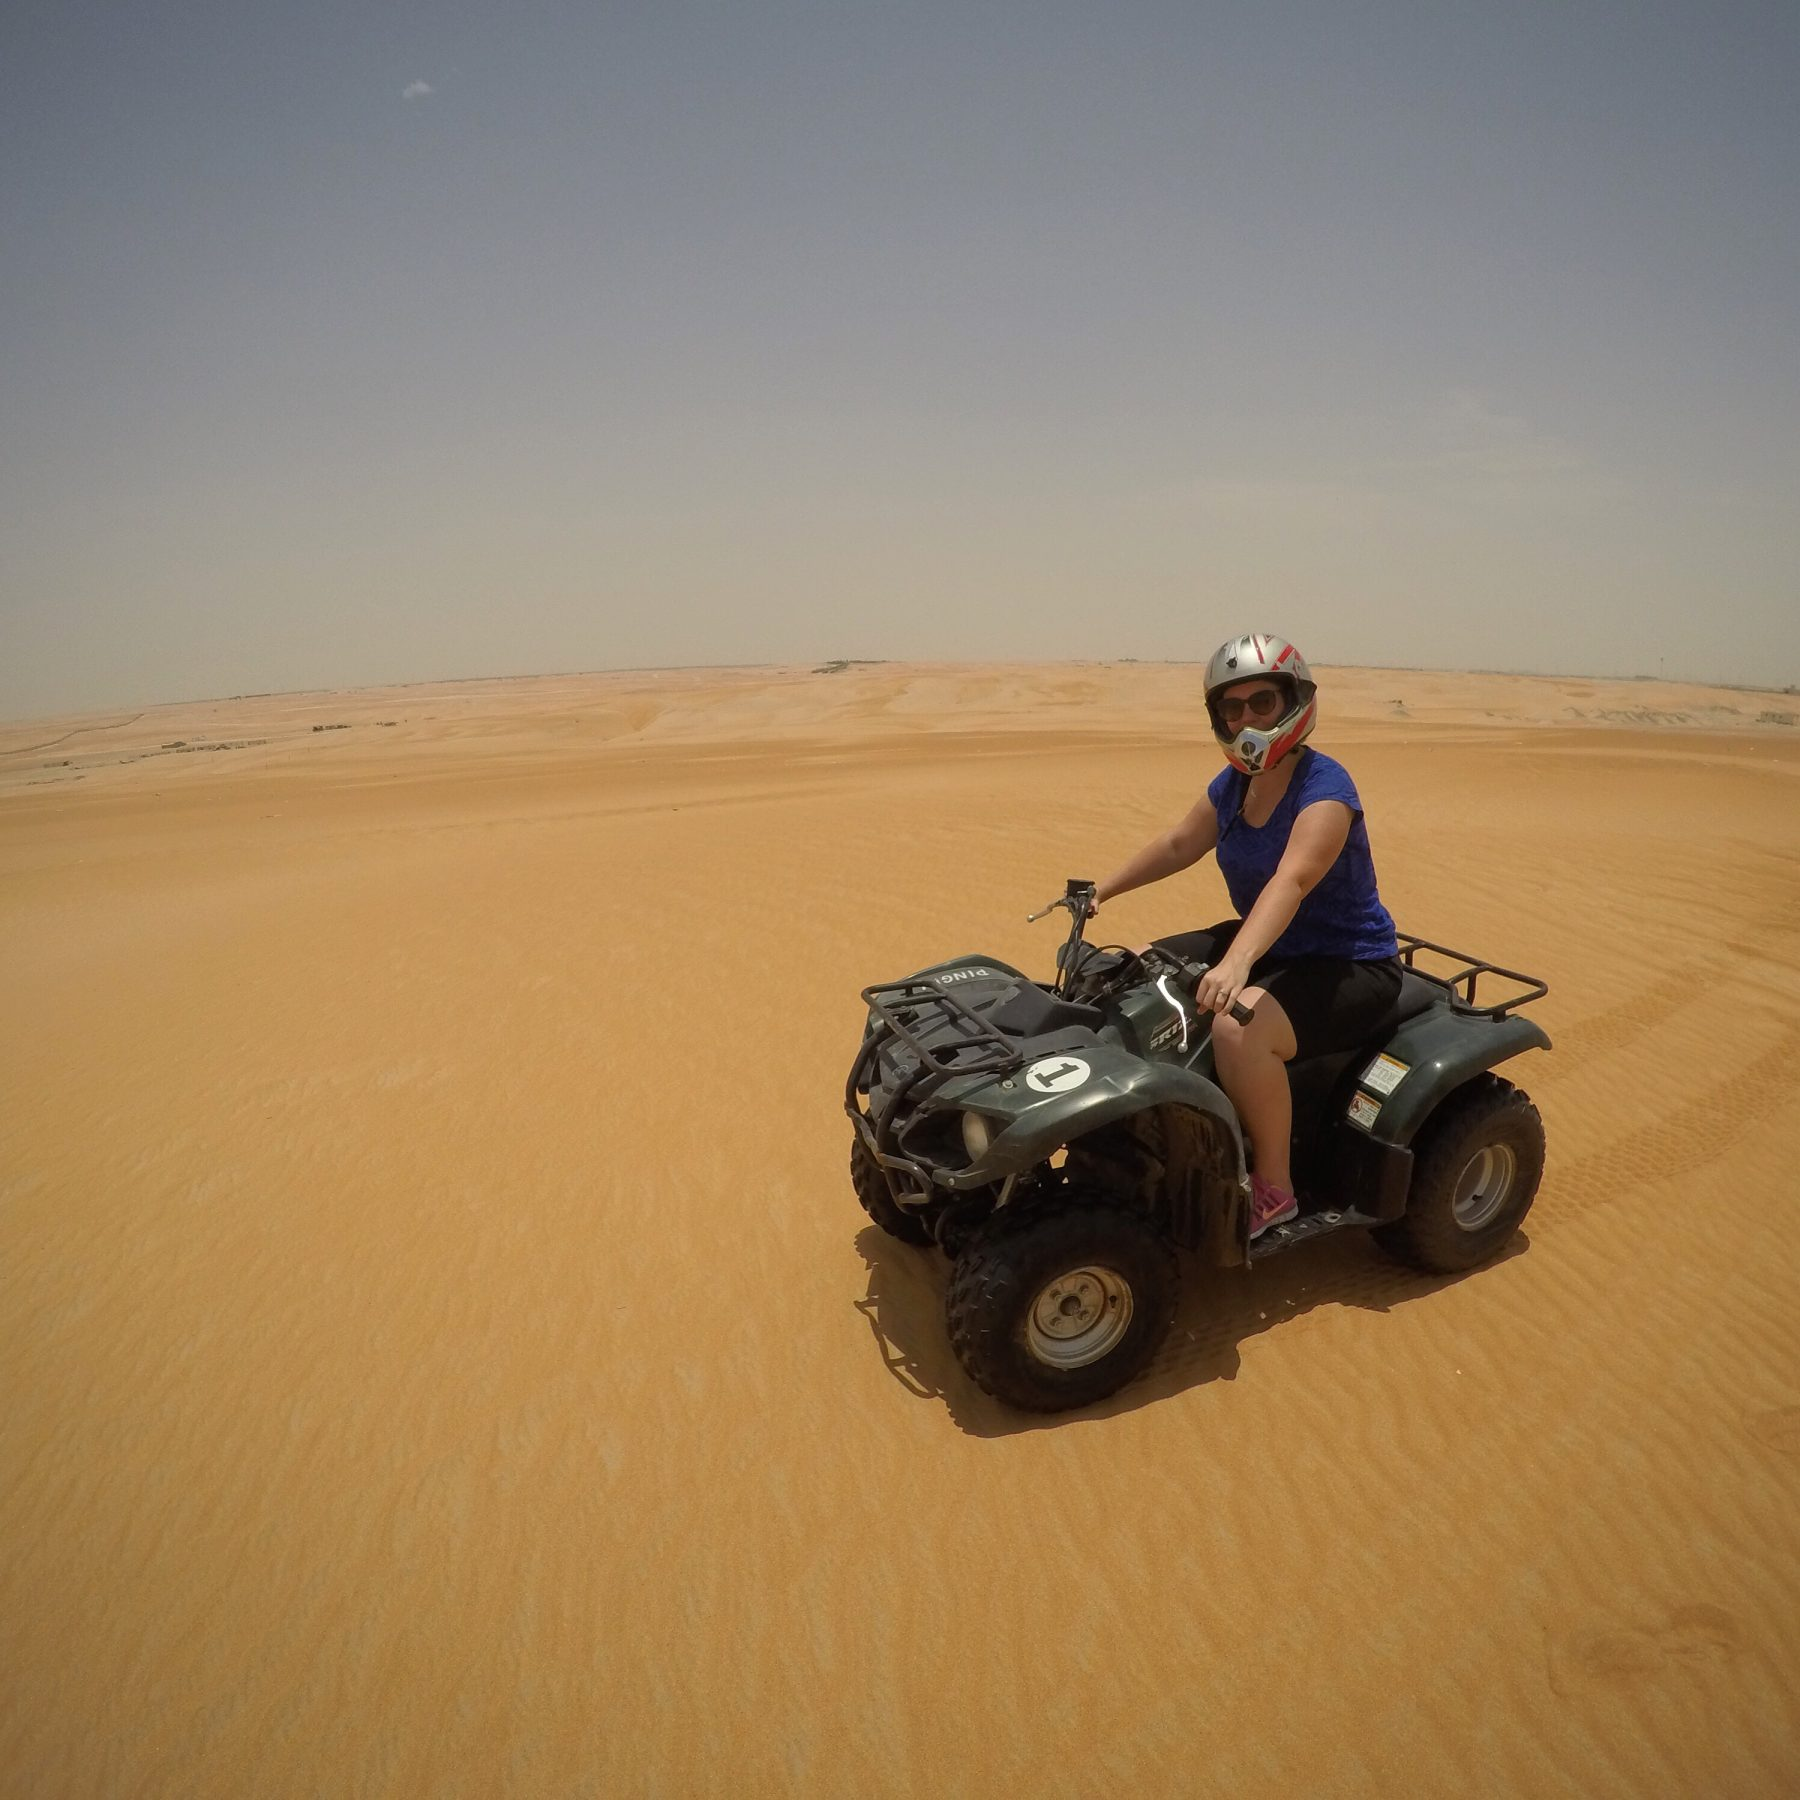 dune bashing quad bike abu dhabi